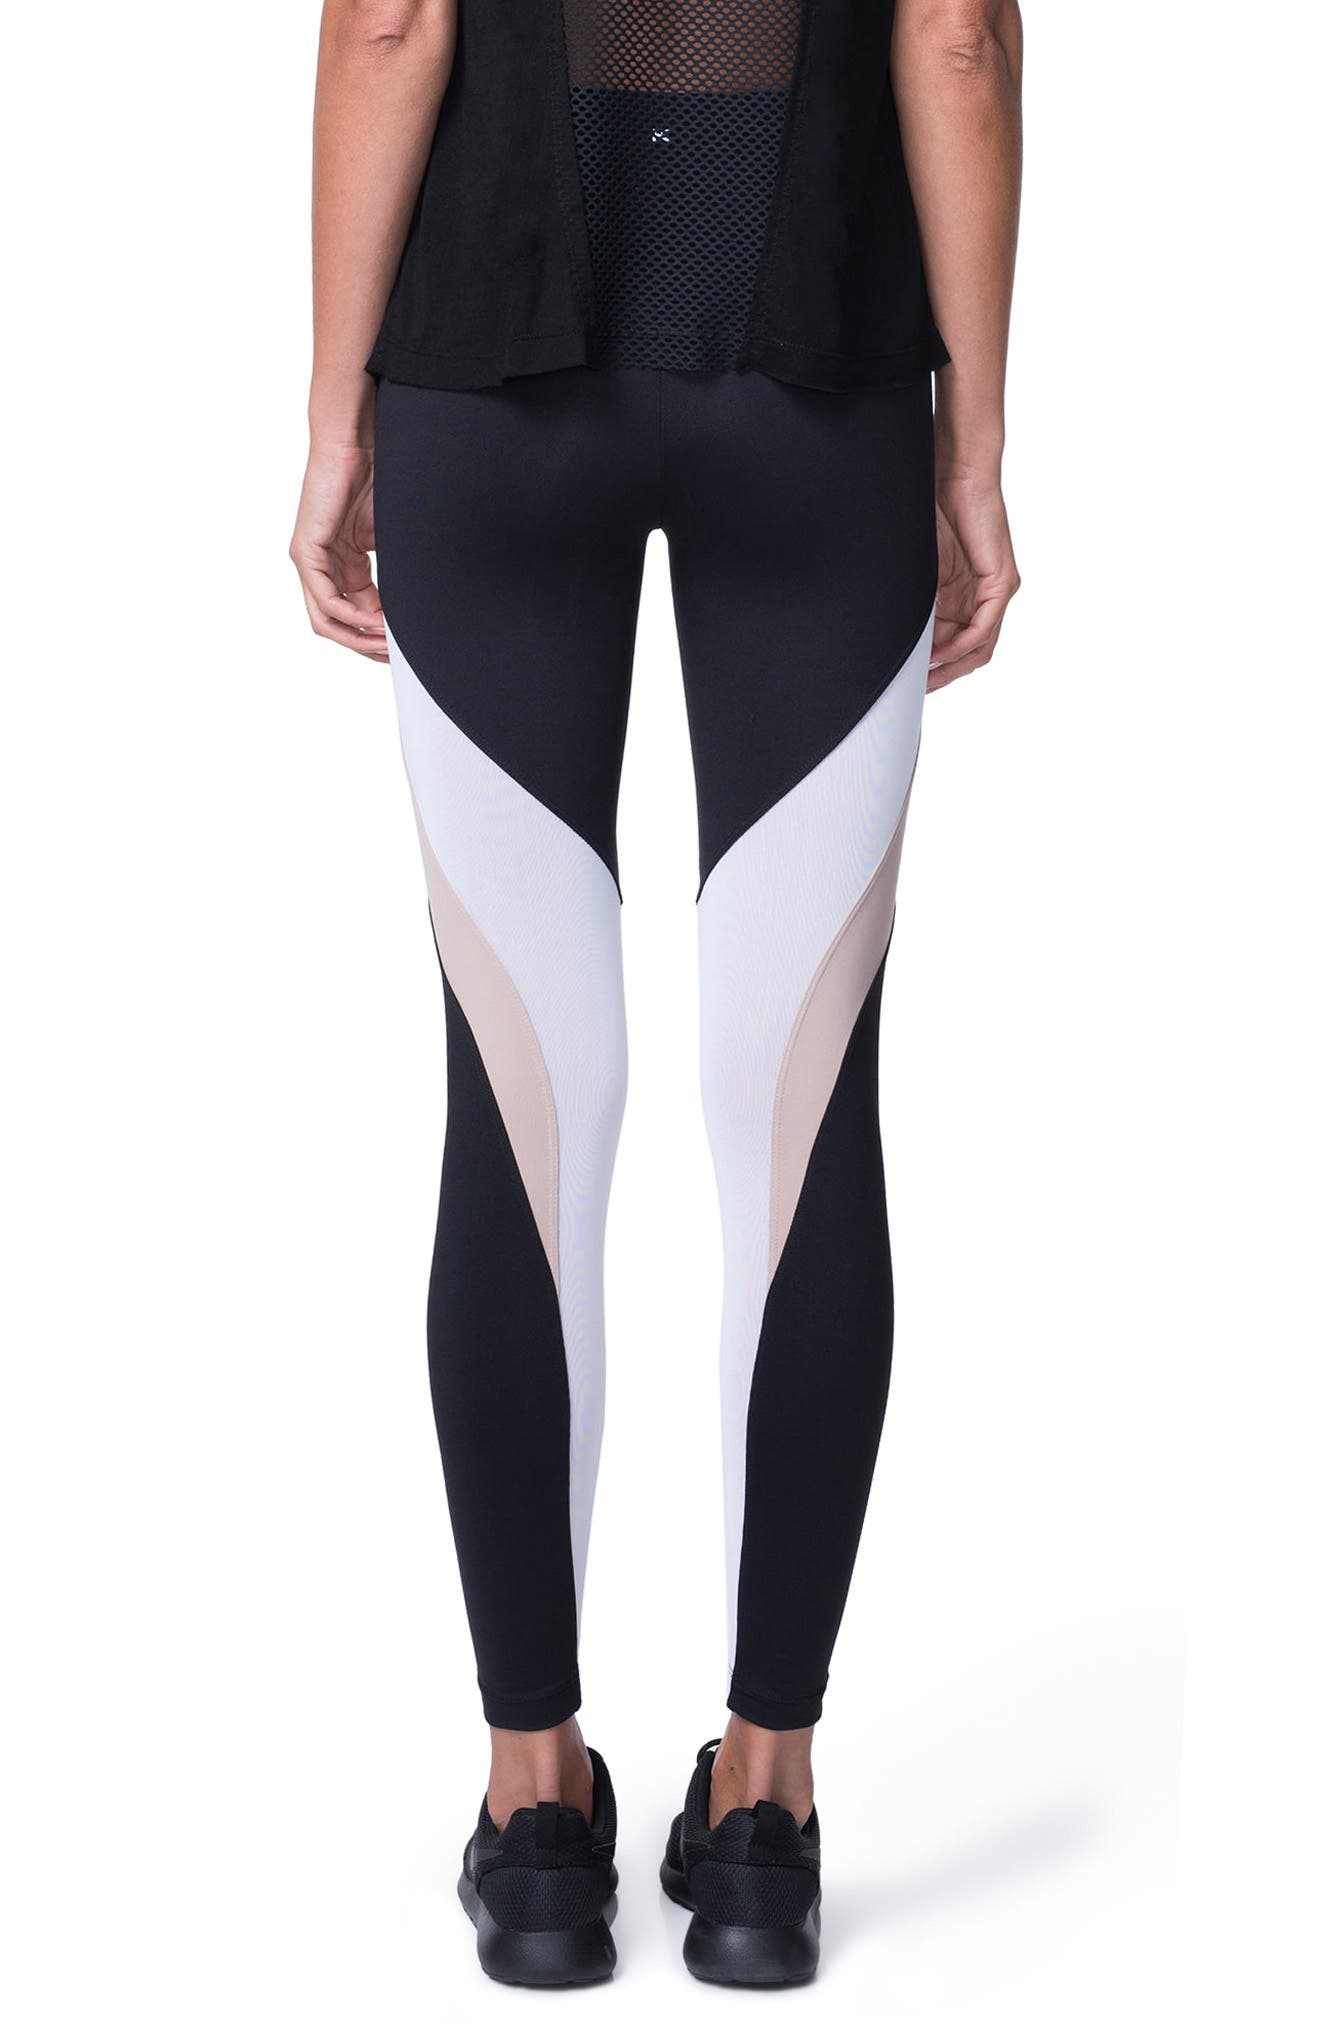 Frame Leggings,                             Alternate thumbnail 2, color,                             Bisque/ Black